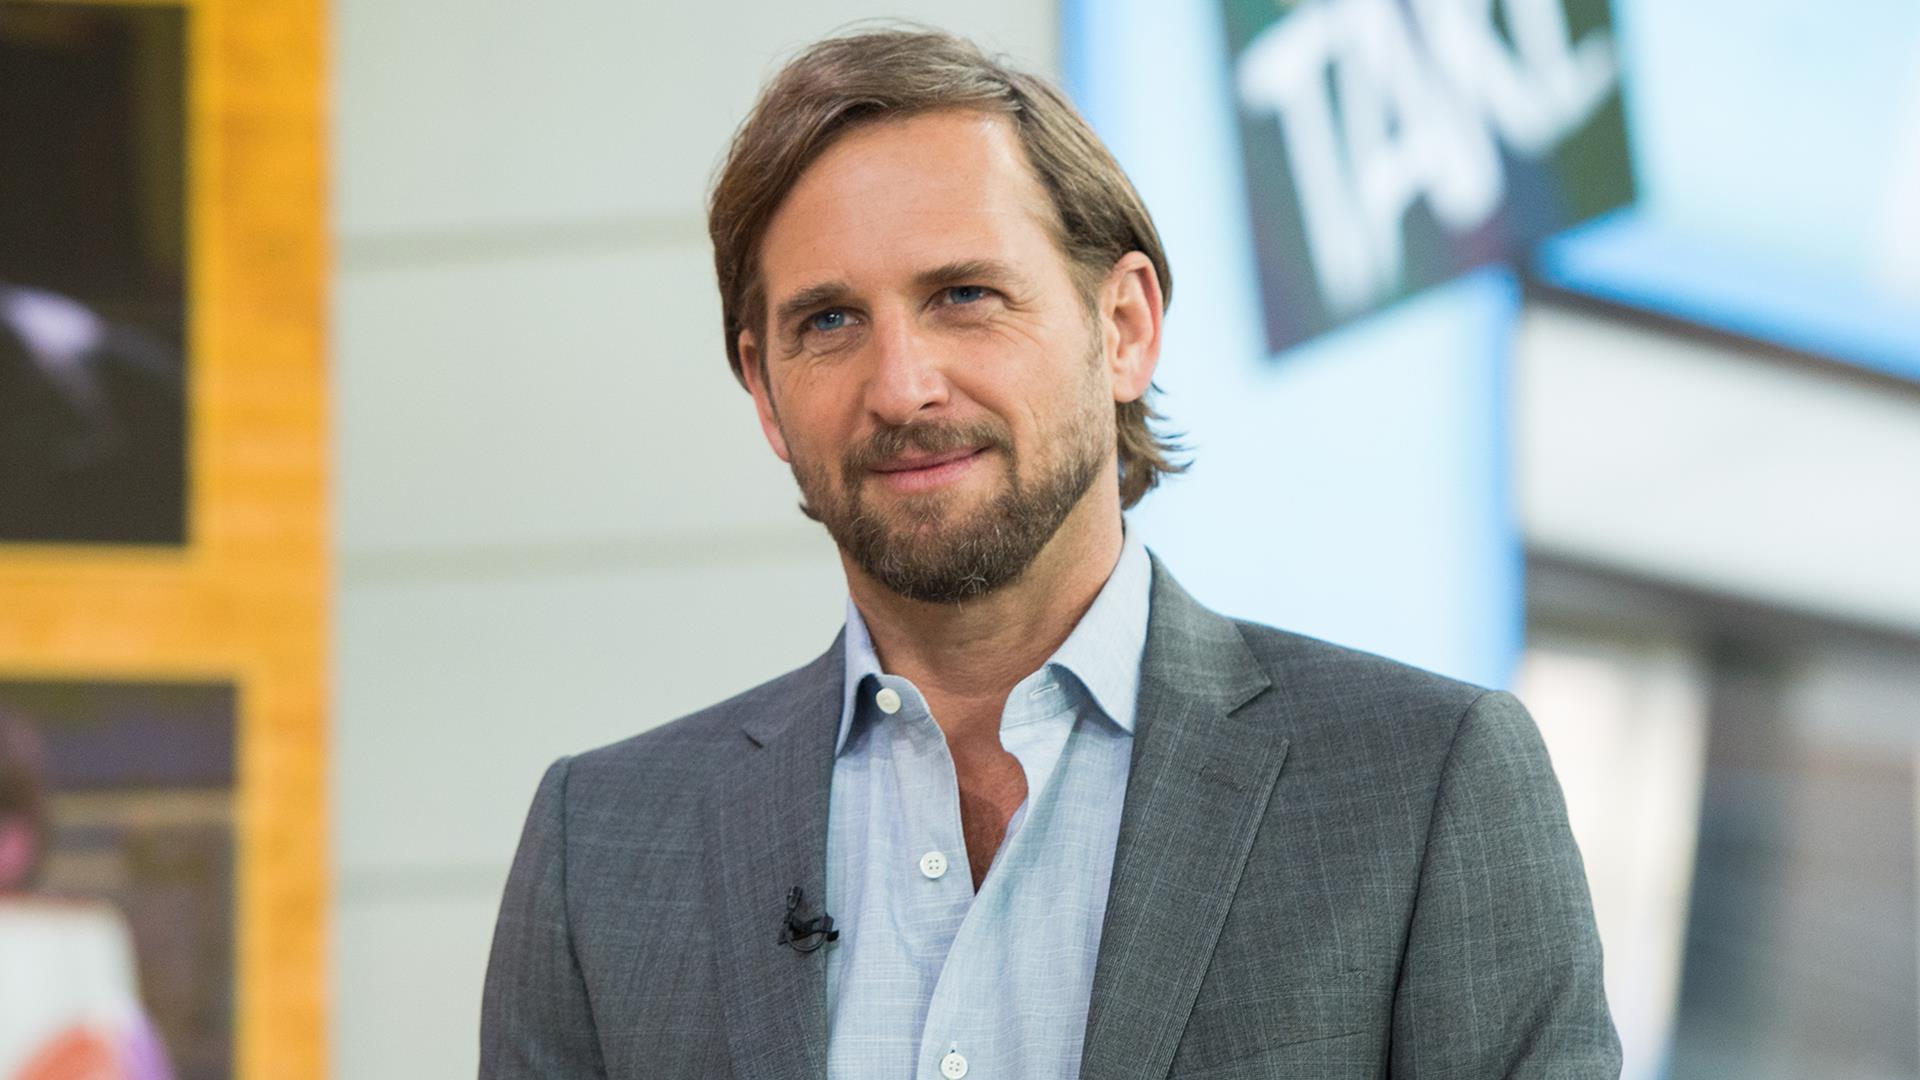 josh lucas new film �youth in oregon� takes lighthearted